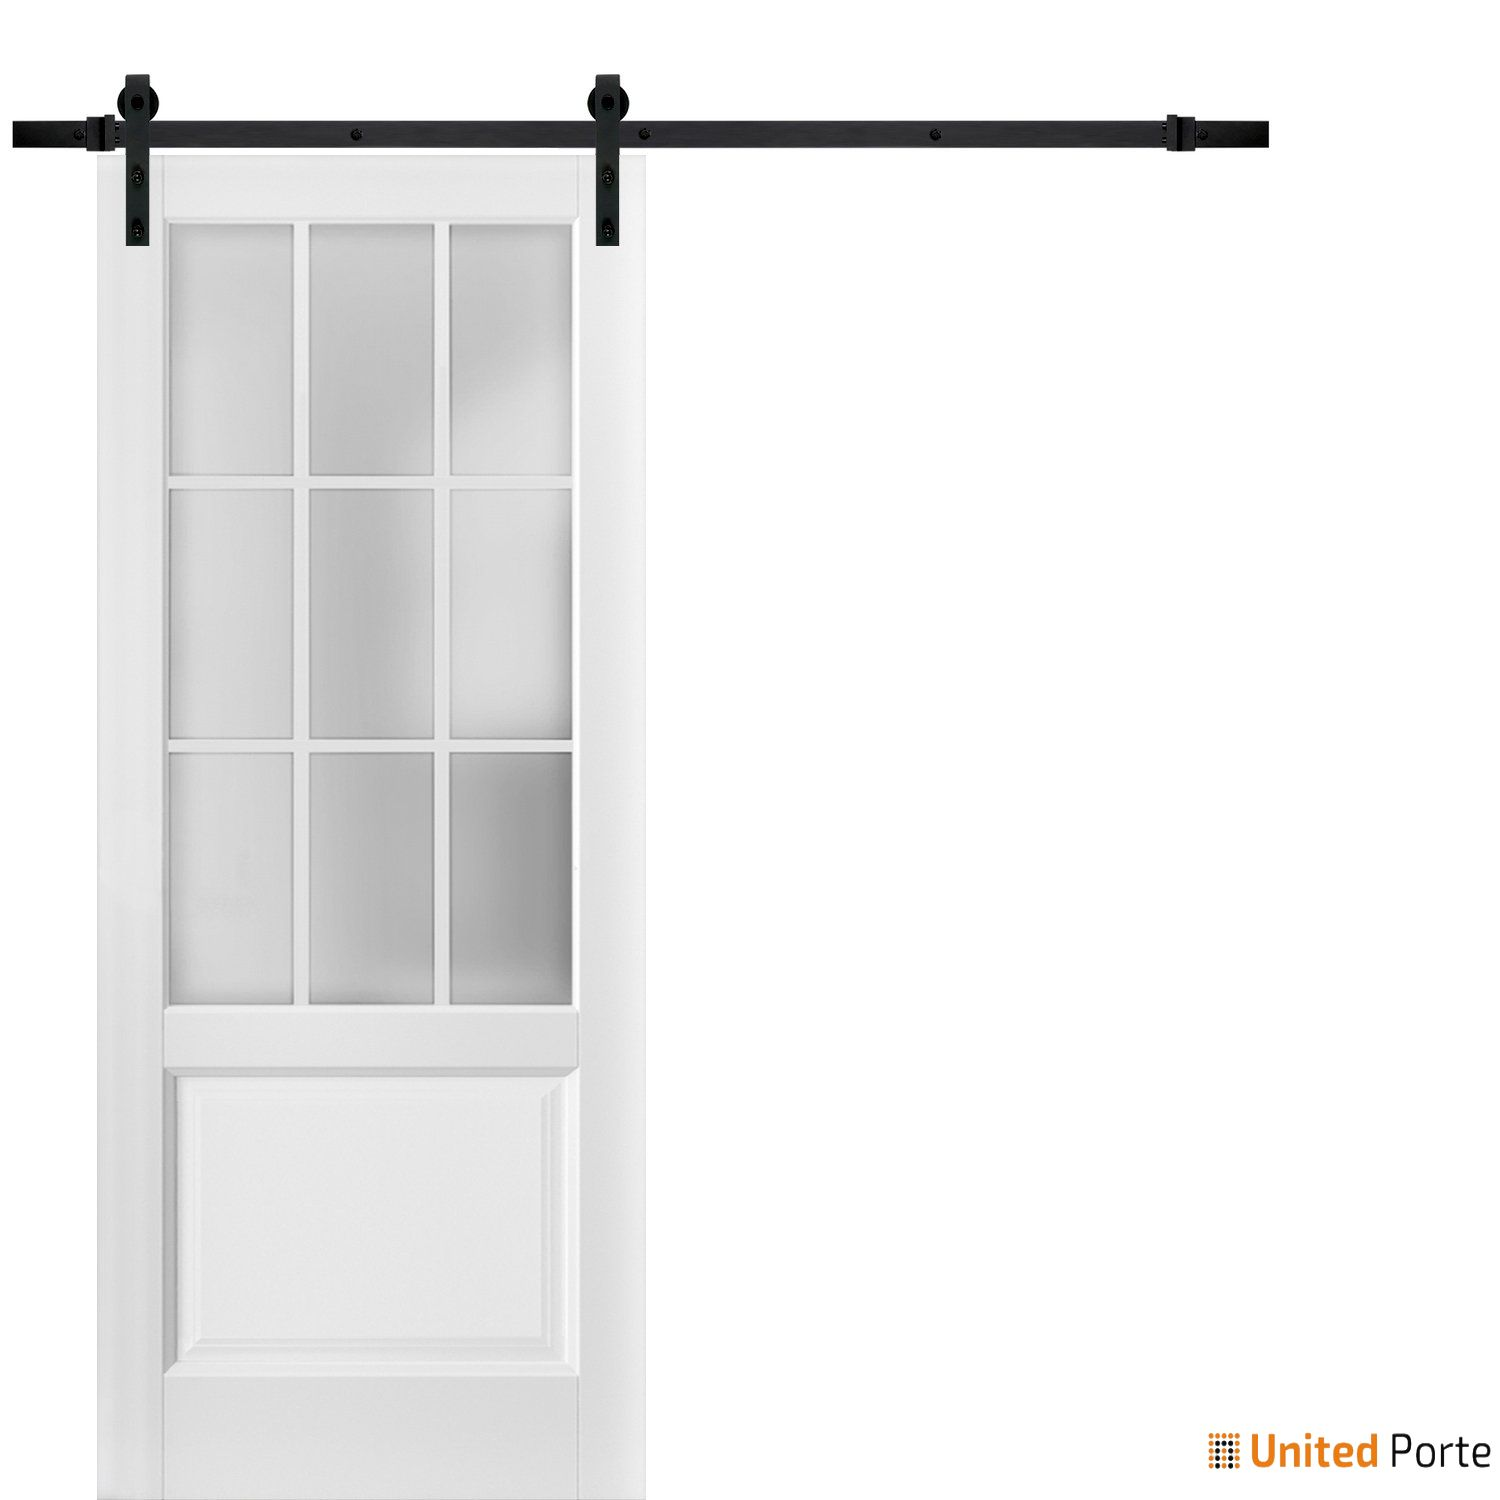 Felicia 3309 Matte White Sturdy Barn Door Frosted Glass 9 Lites with Black Hardware | Solid Panel Interior Barn Doors